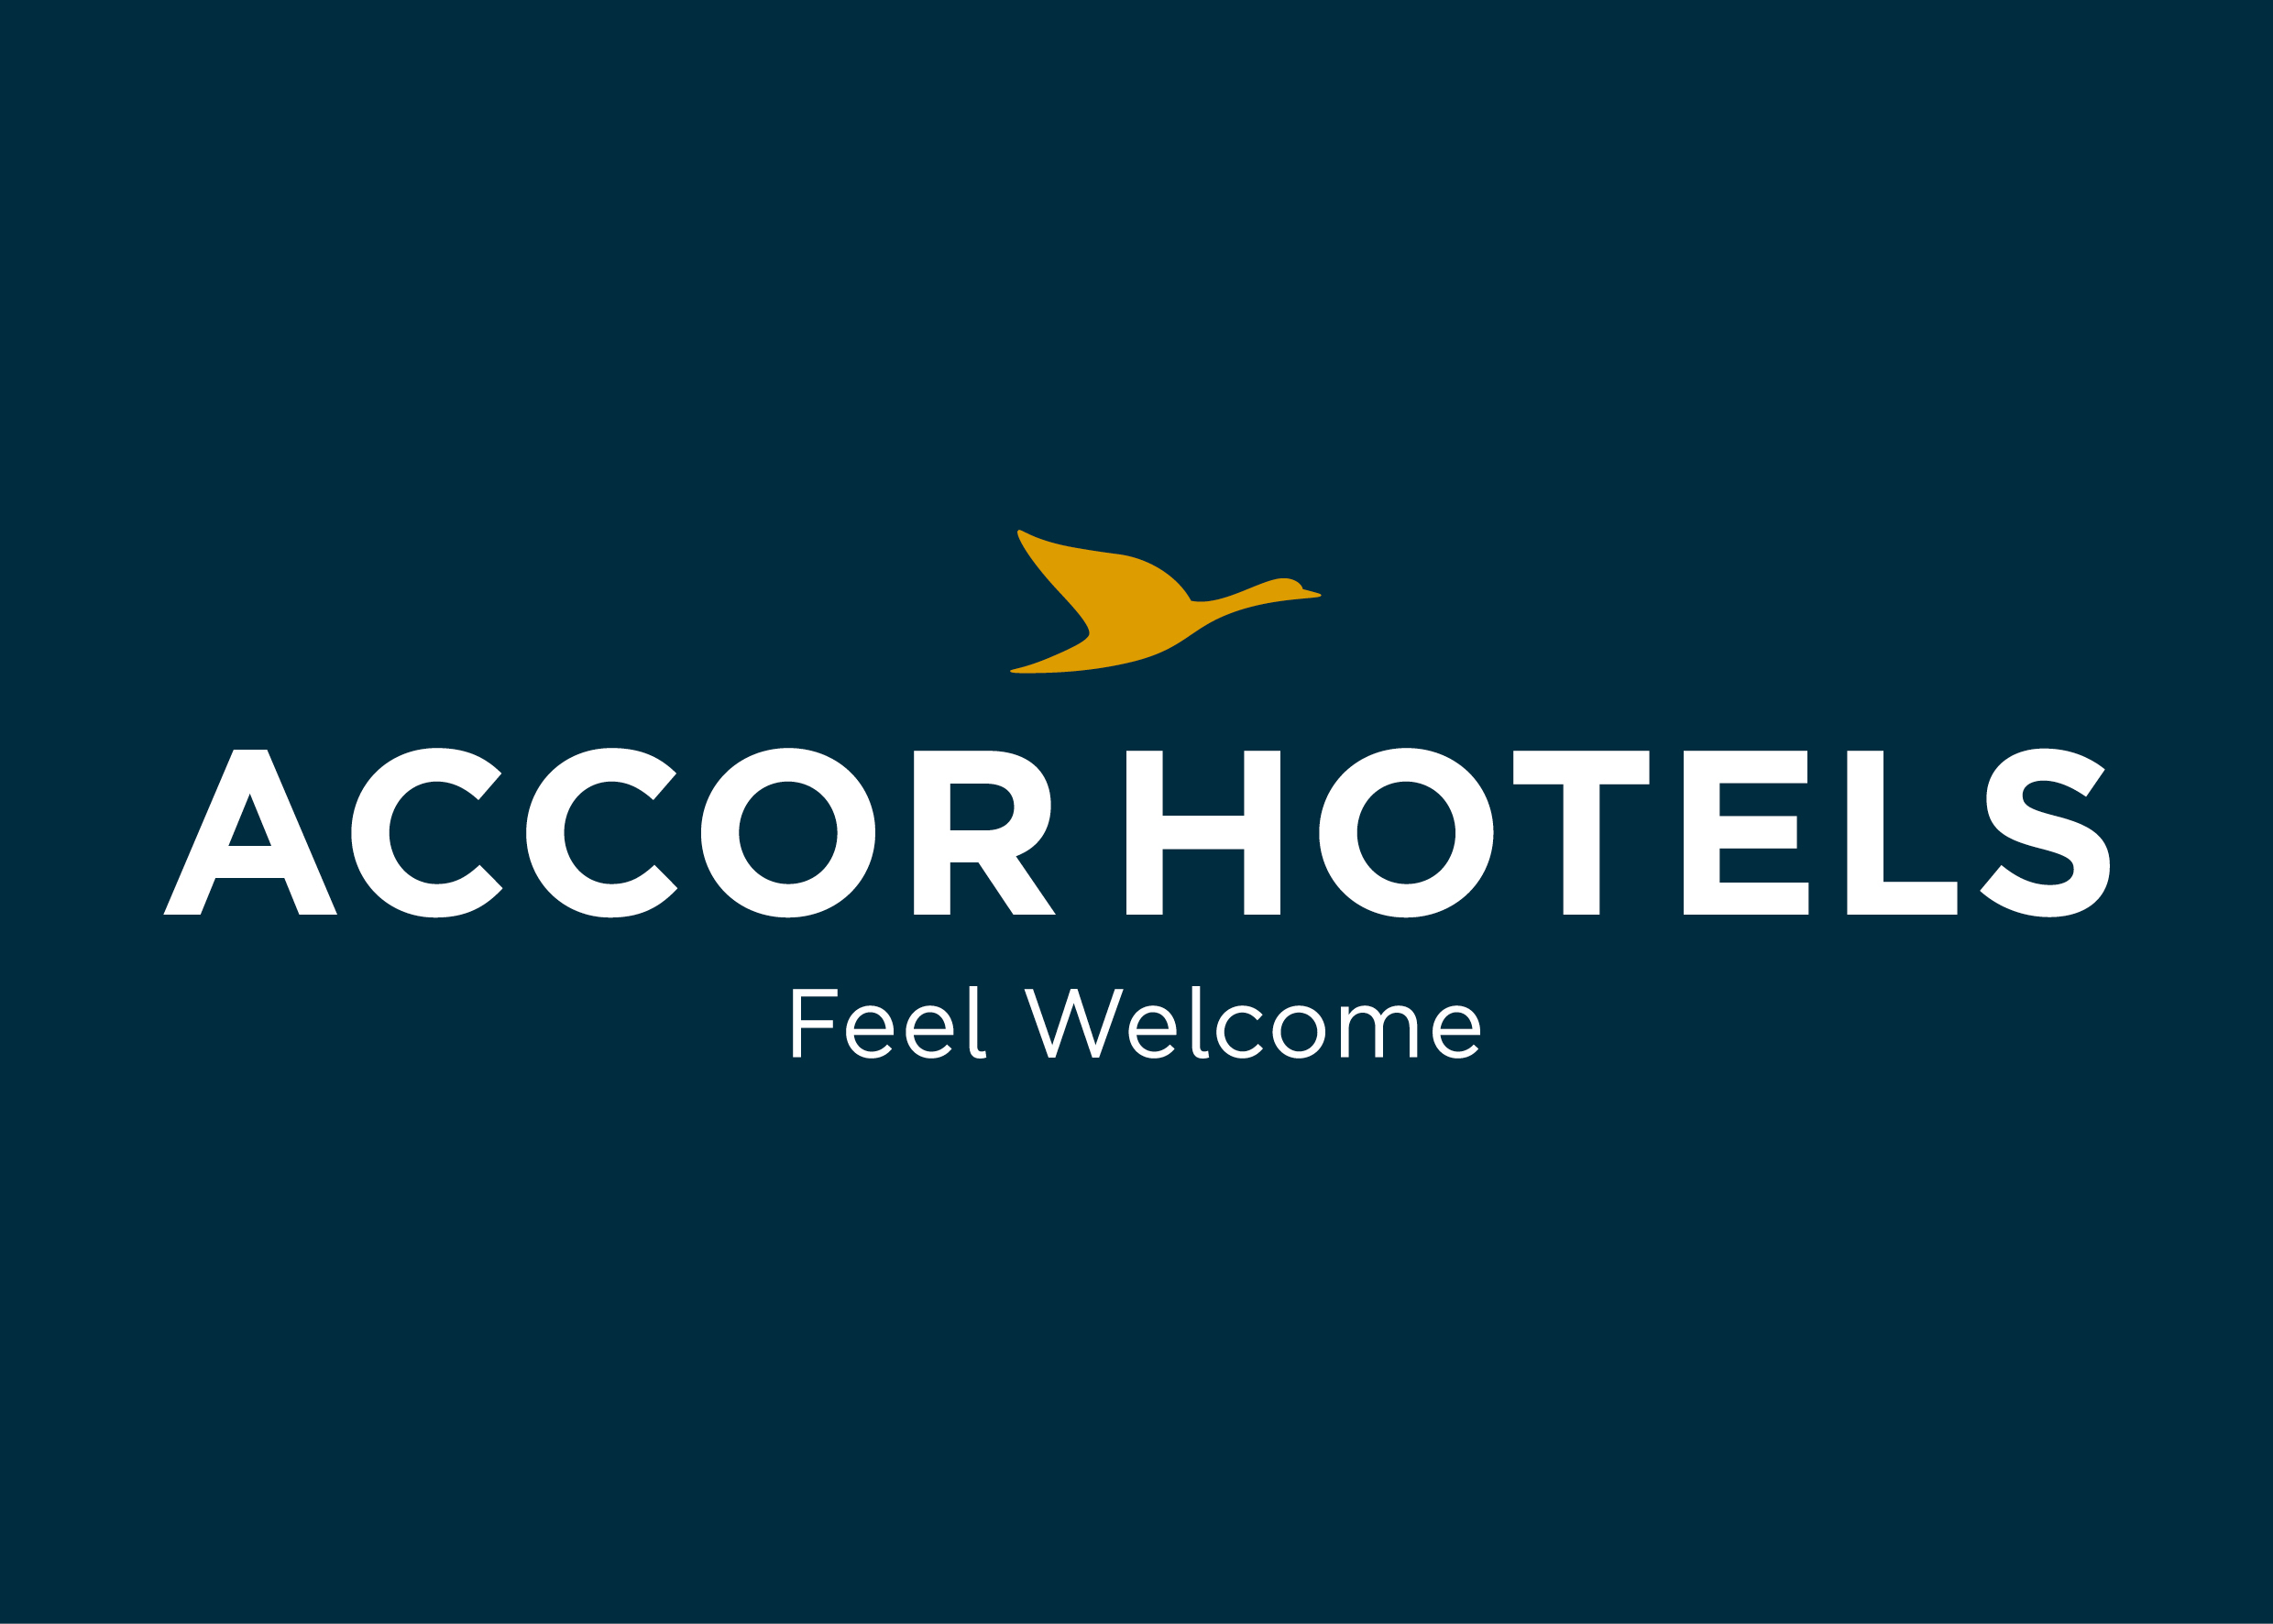 **Subject to availability in the hotels participating in the Le Club AccorHotels loyalty scheme. ***Offer valid for one night for an amount less than or equal to €40 in hotels participating in the Le Club AccorHotels loyalty programme. For nights above €40, benefit from a €40 discount in exchange for 2, Rewards points.